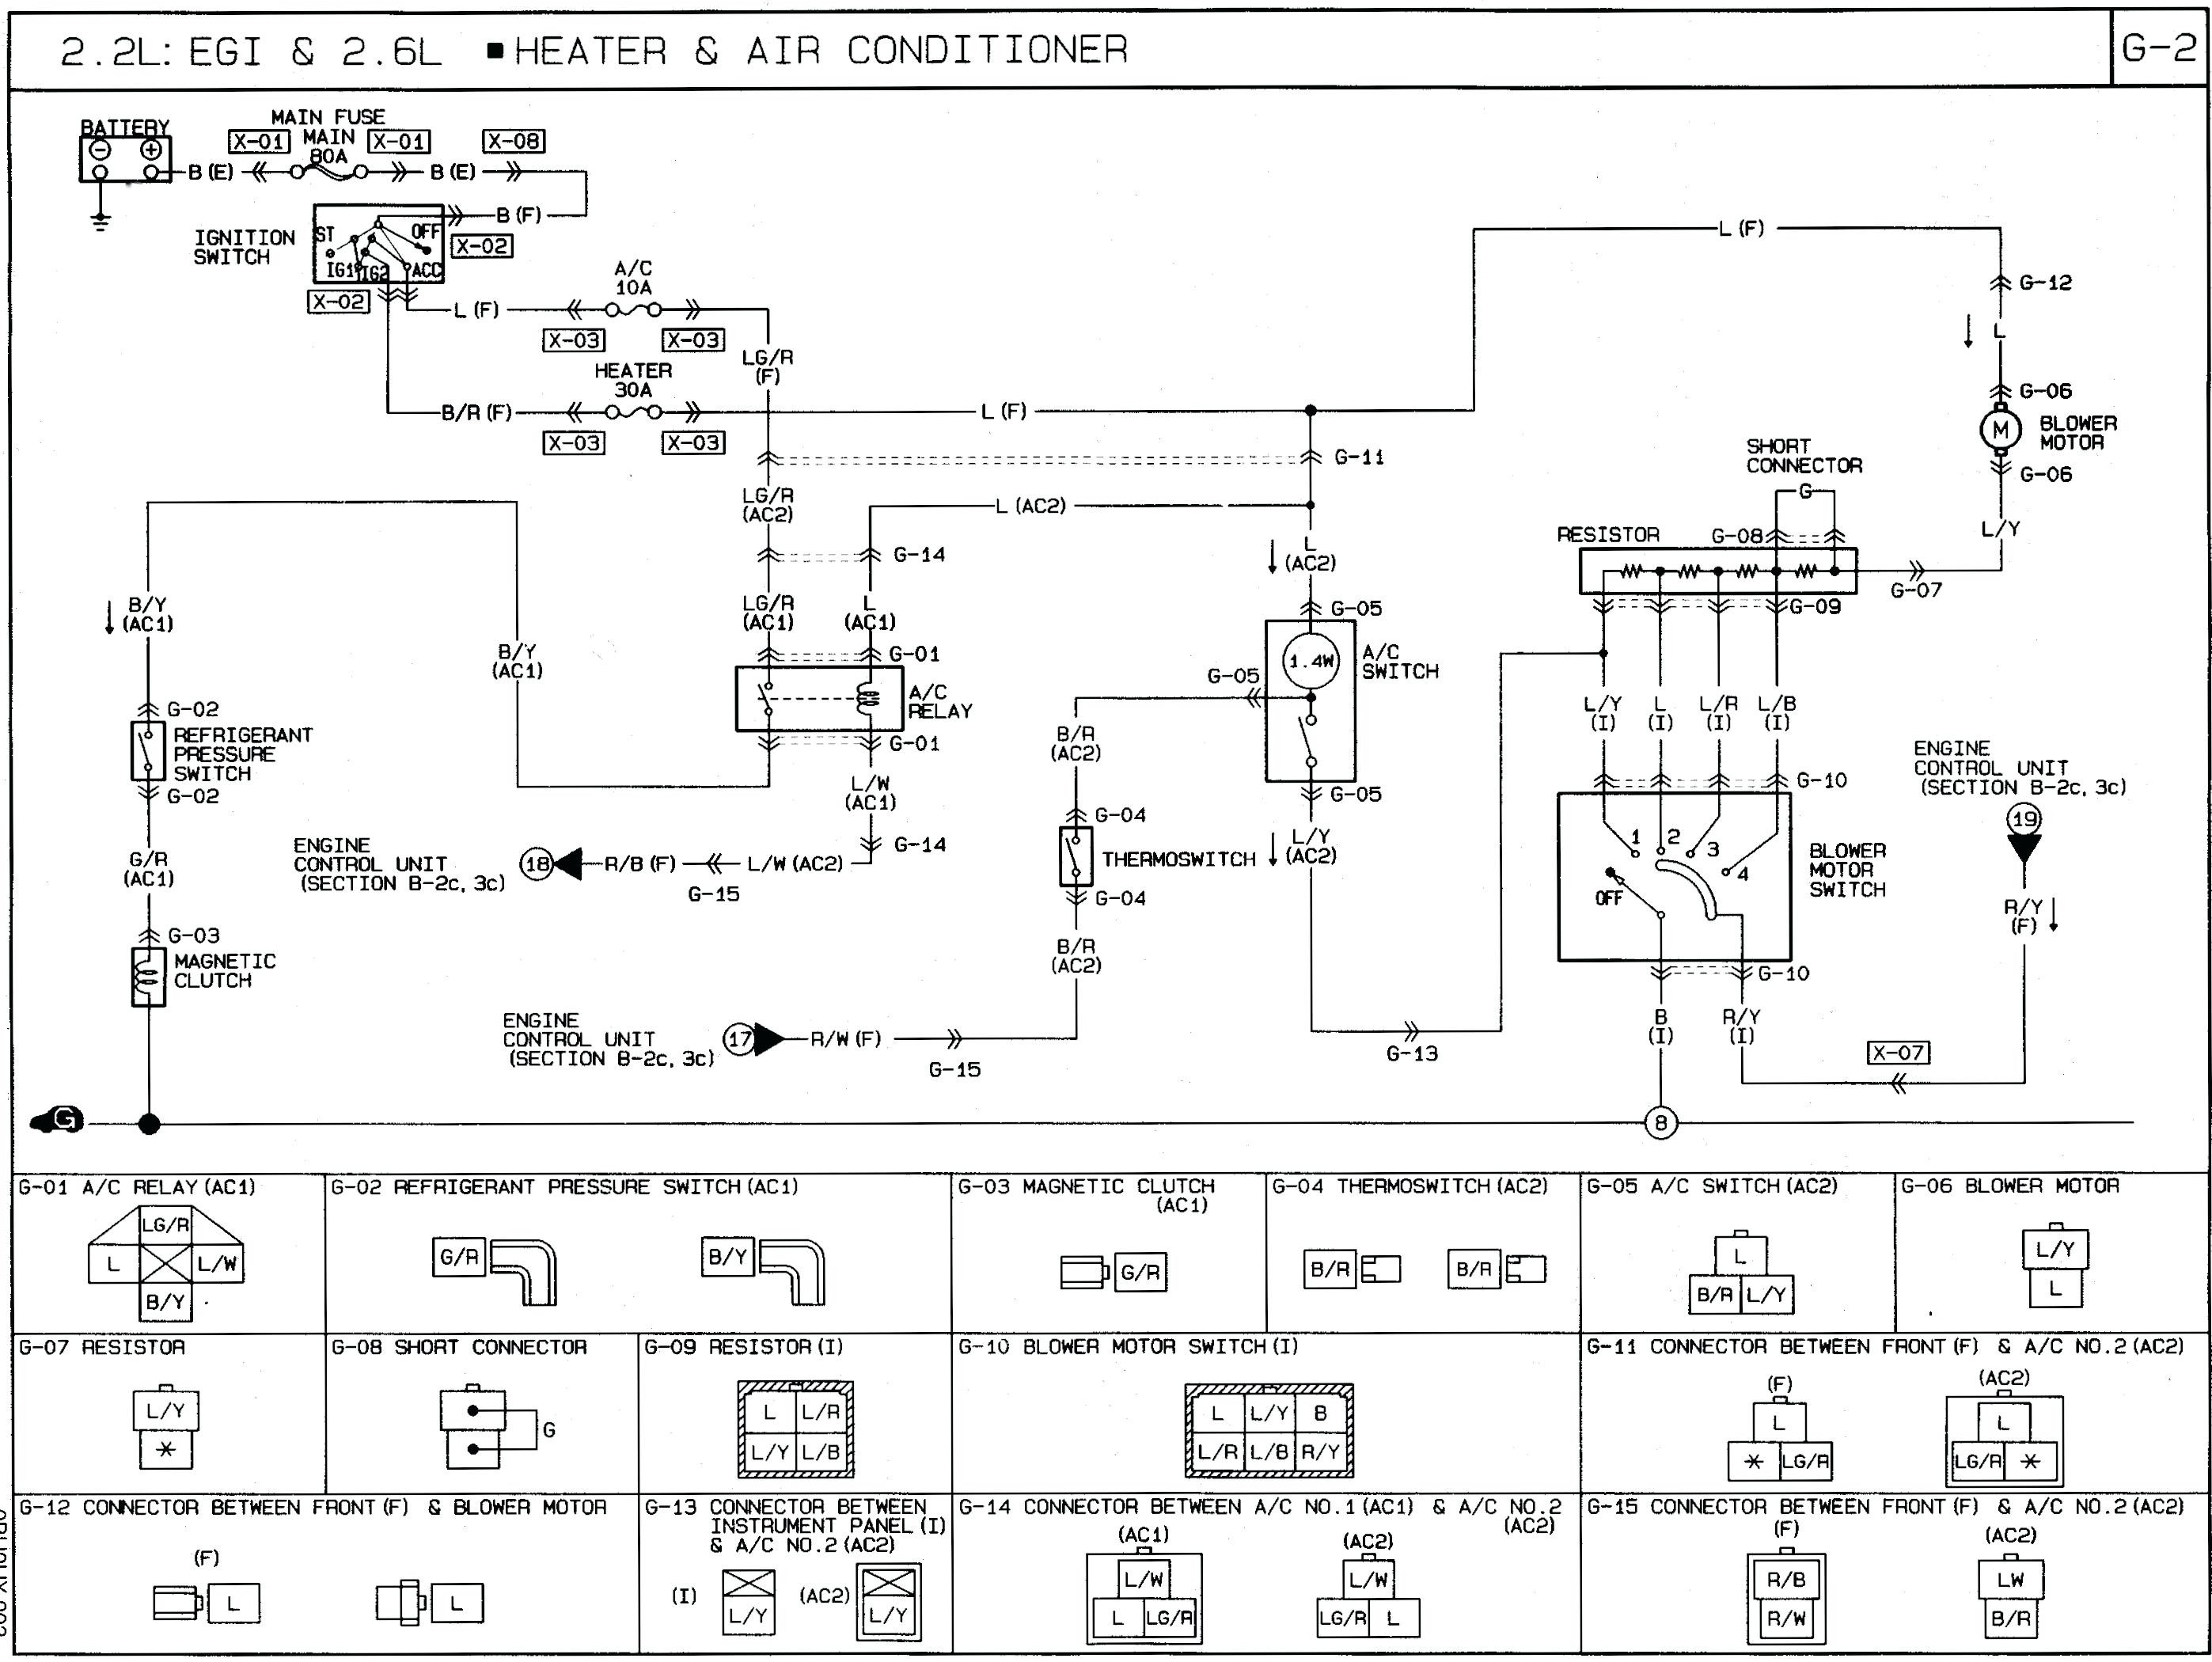 Automotive Air Conditioning Diagram Conditioner Simple Start Stop Wiring Split Pdf Central White Of